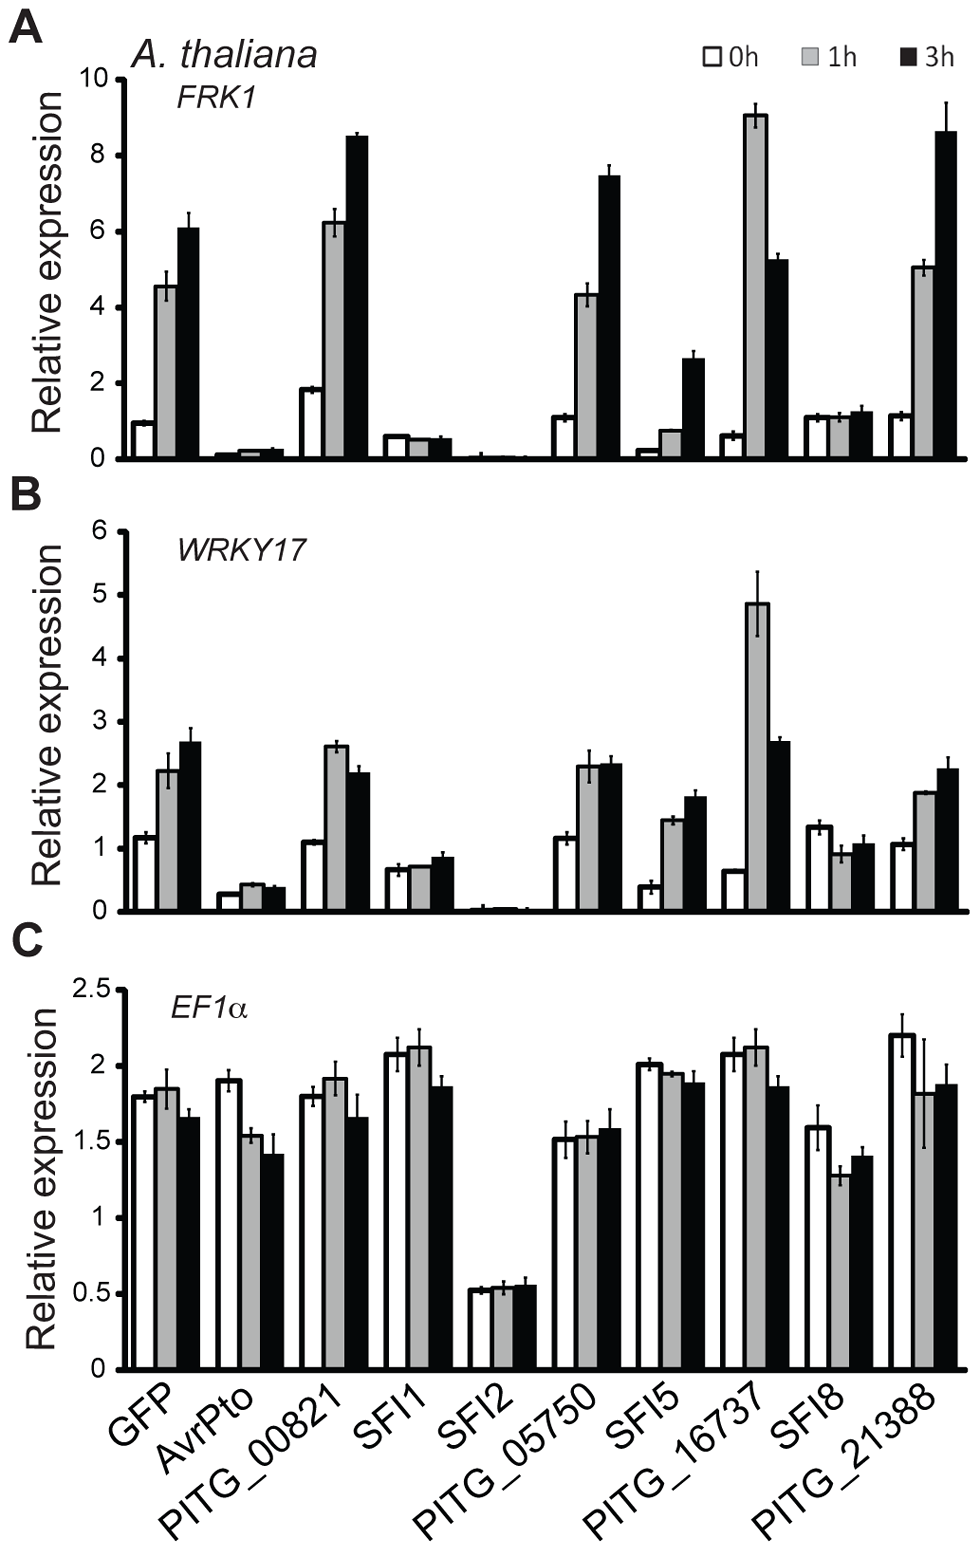 Transcriptional profiling of MAMP-inducible genes in <i>A. thaliana</i> protoplasts transfected with SFI effector constructs.